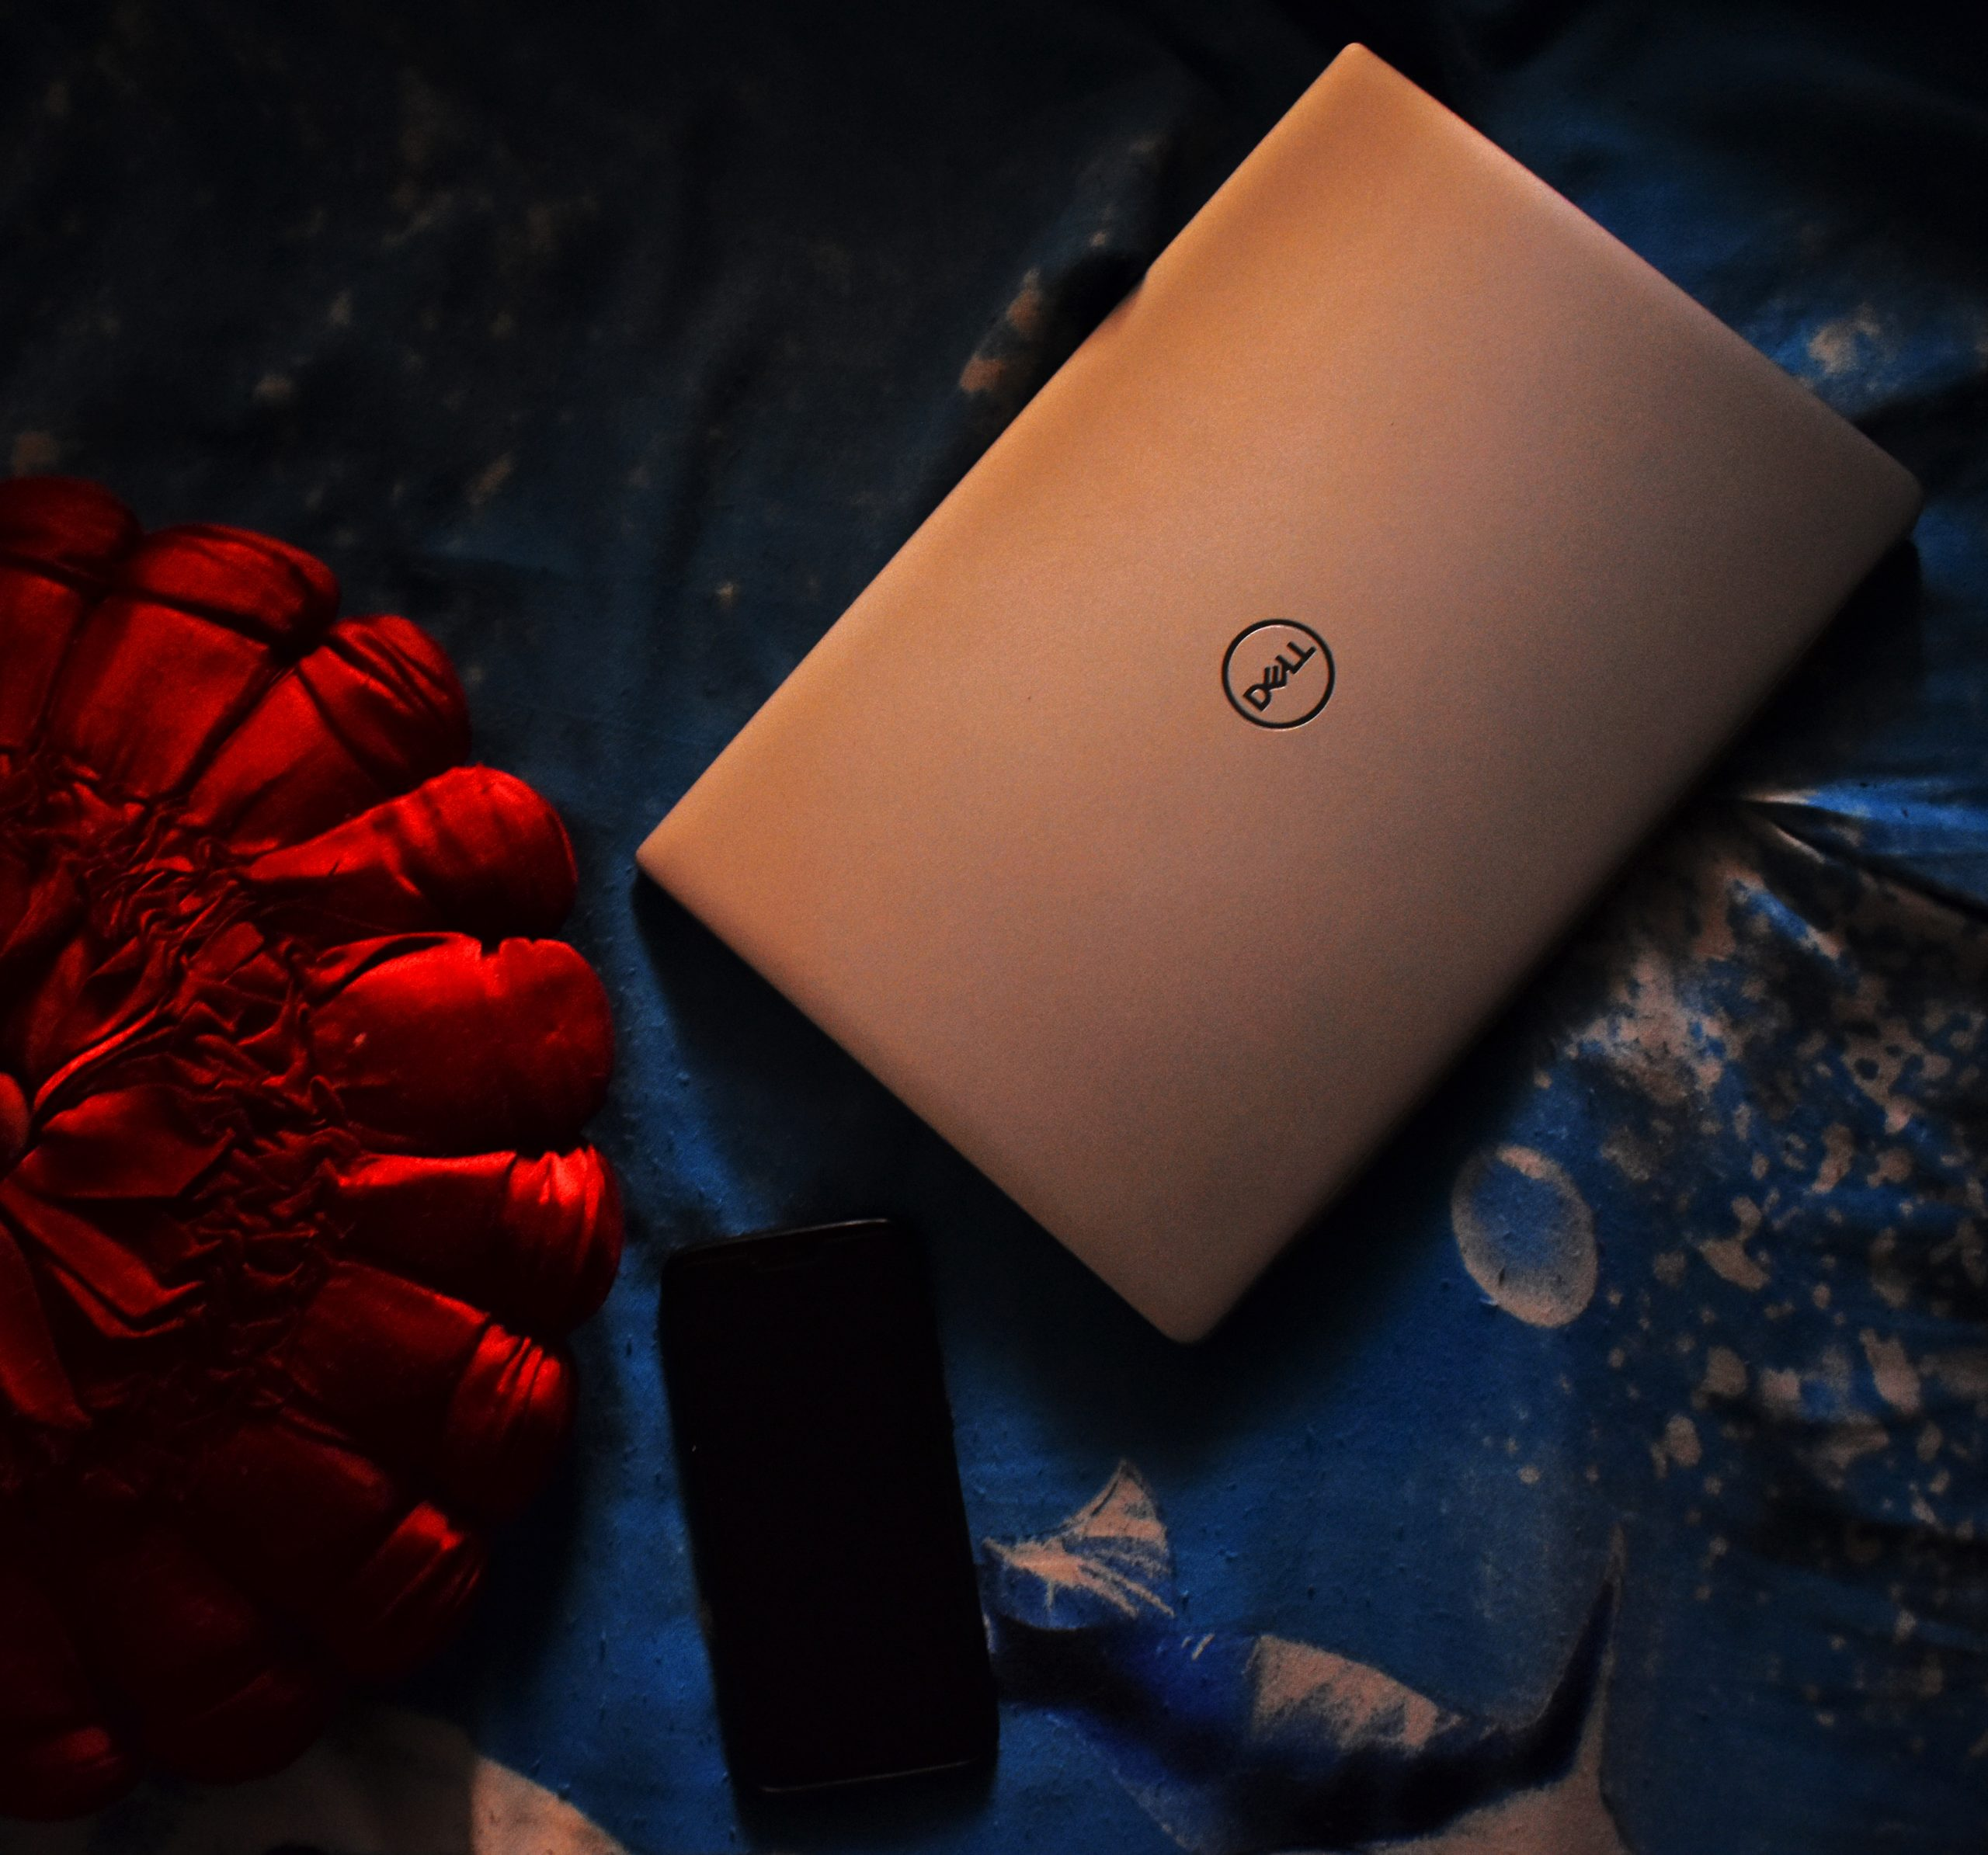 Dell Laptop with Cellphone